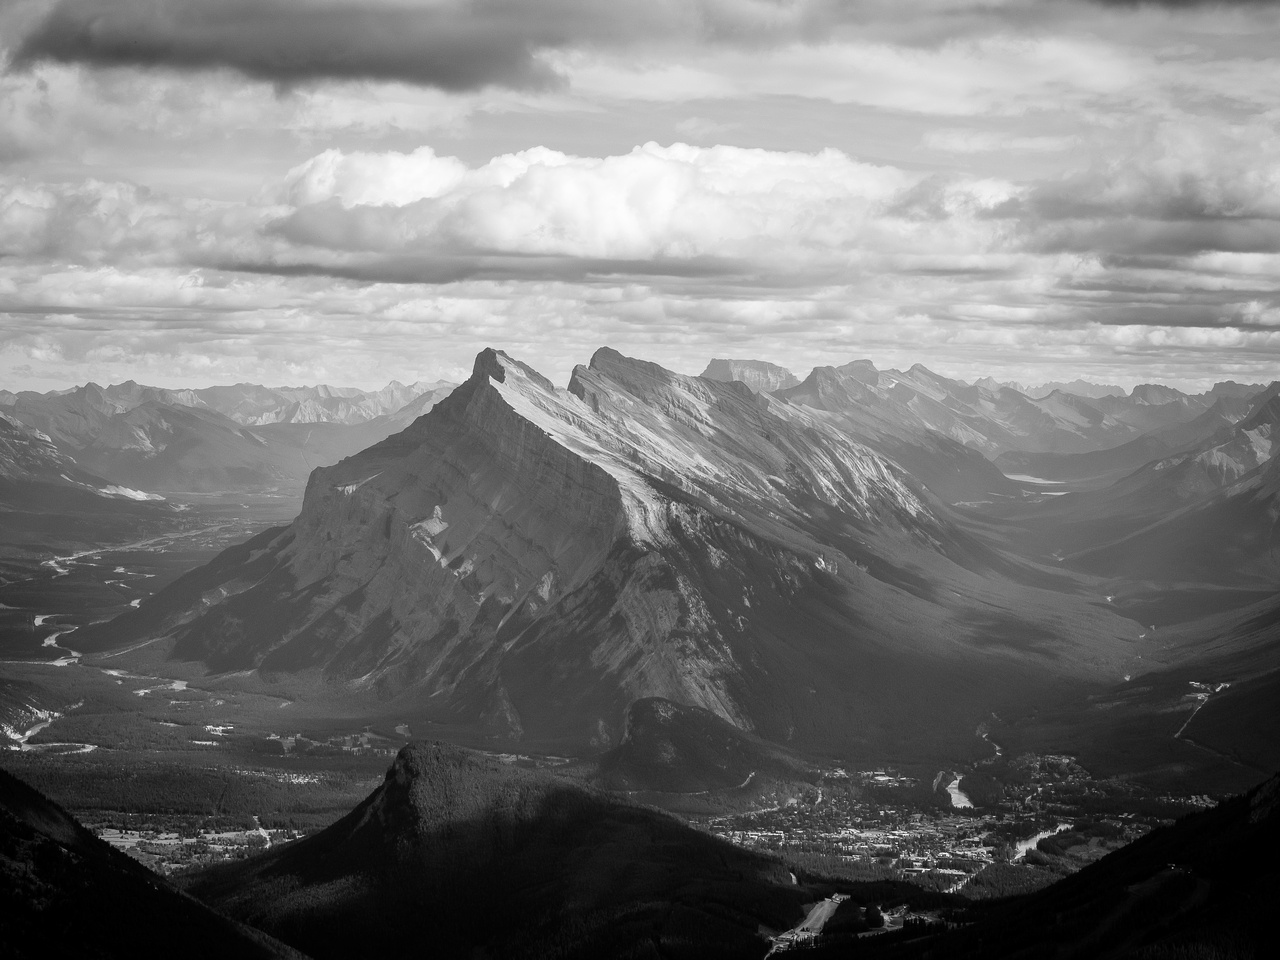 Mount Rundle looms impressively over the town of Banff.